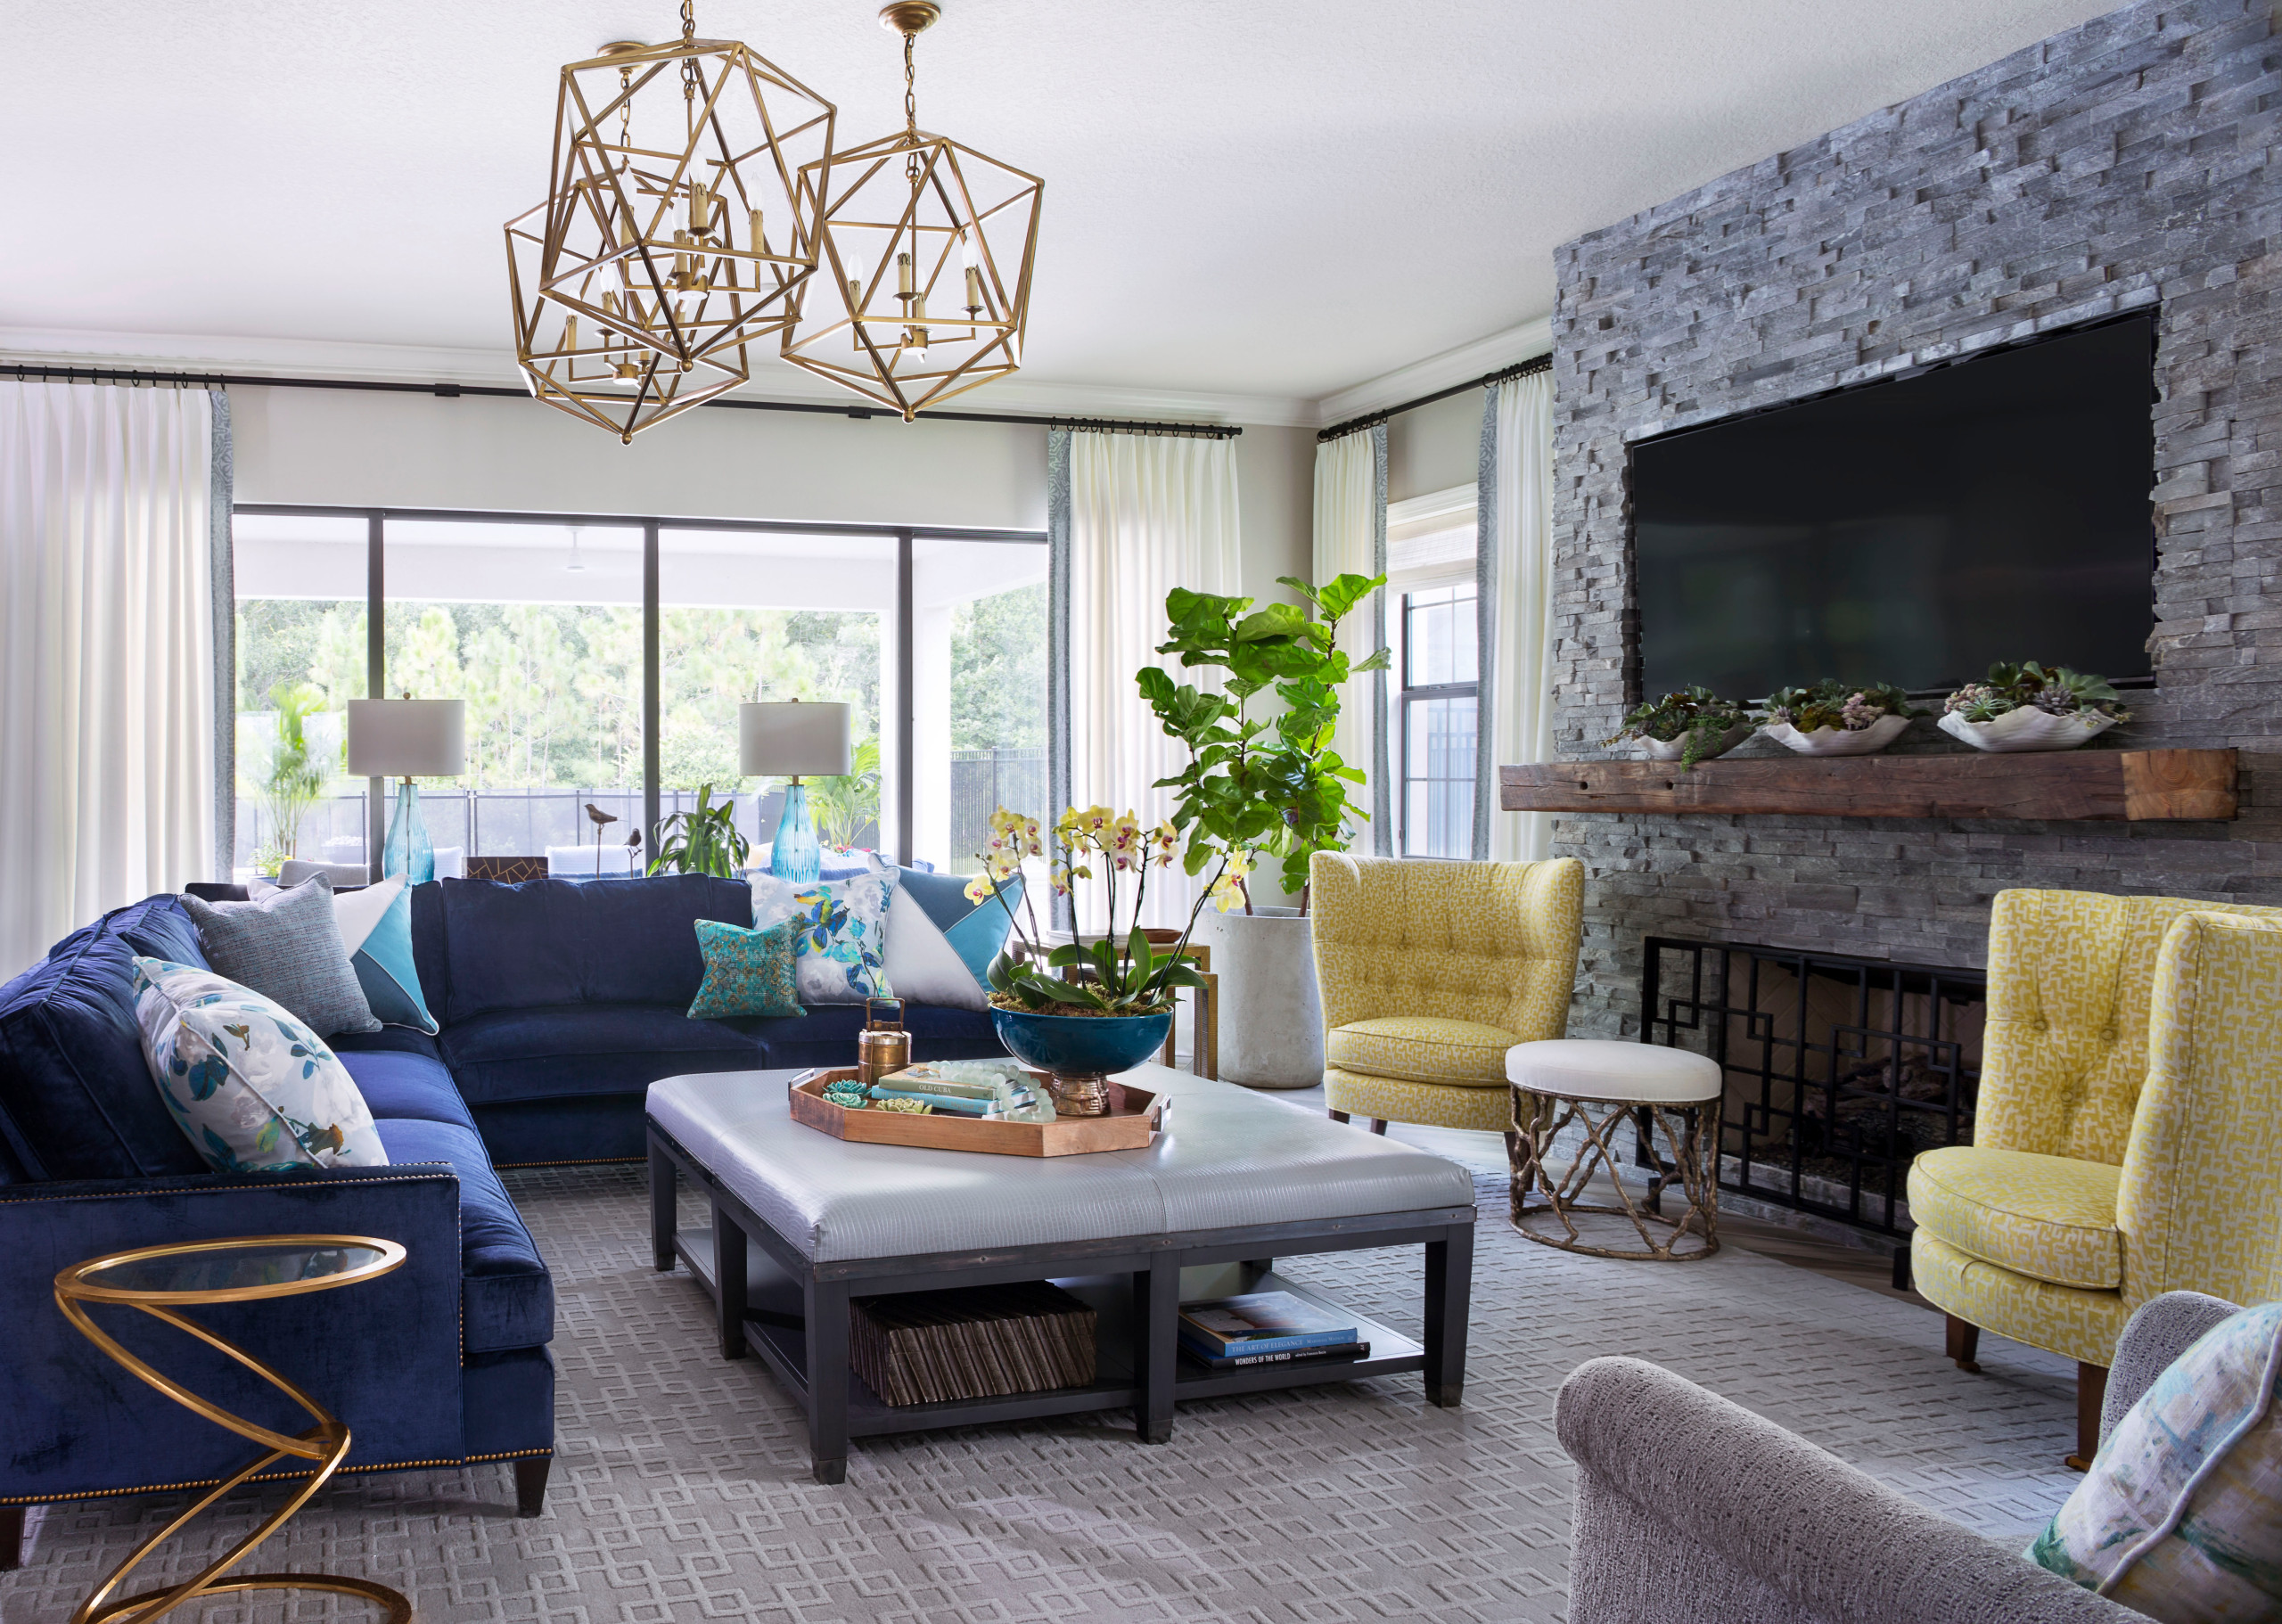 75 Beautiful Family Room Pictures Ideas February 2021 Houzz